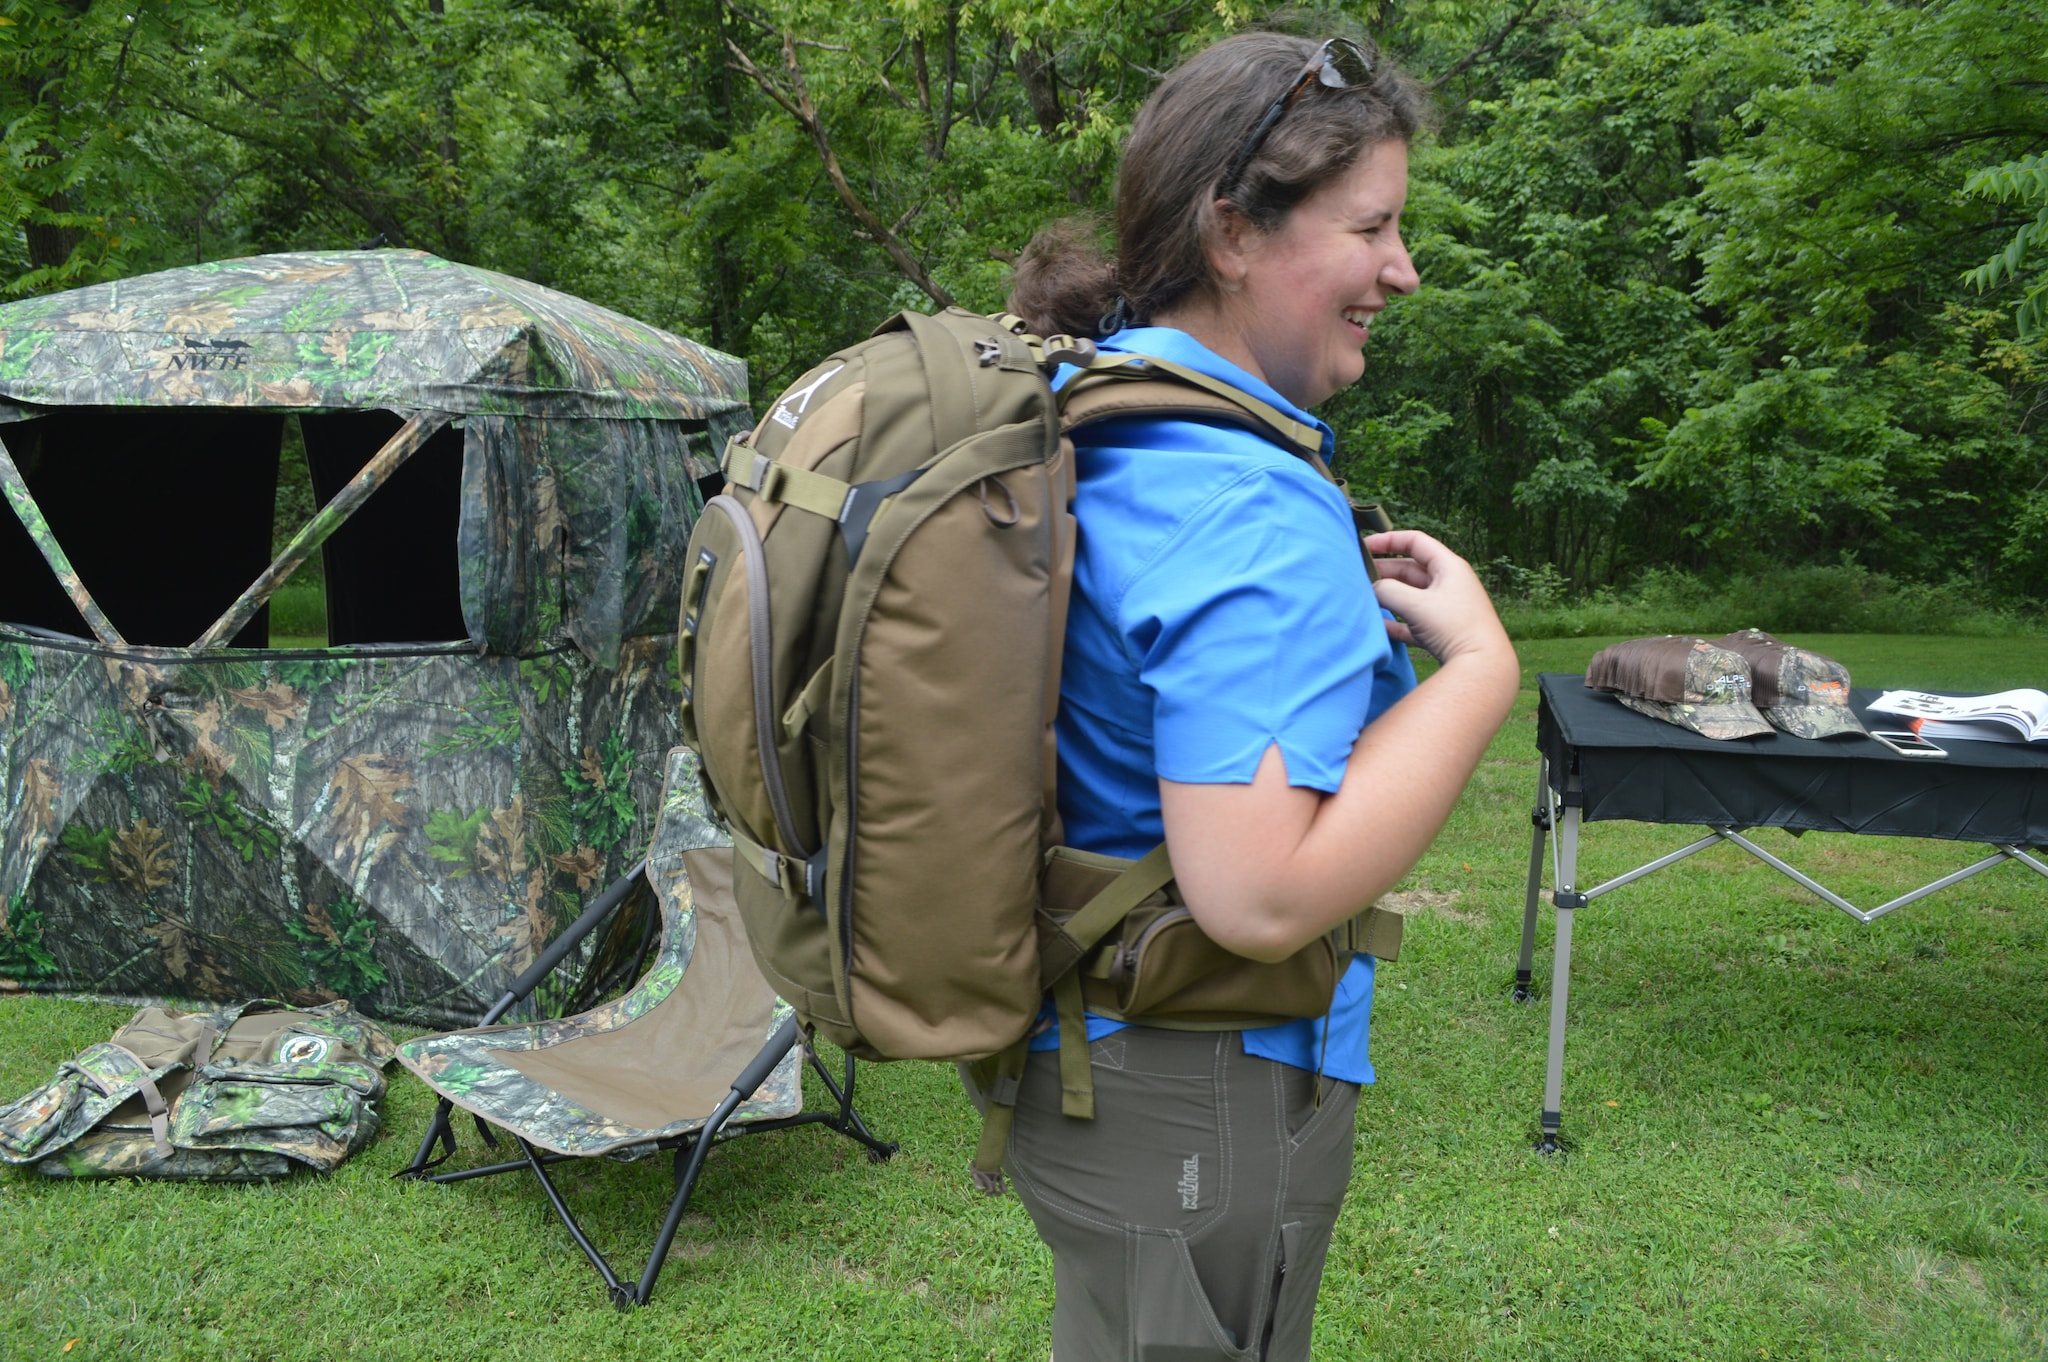 The new Monarch X women's meat pack is the first of its kind we've seen on the market. The fit and comfort is spot on, and we can't wait to get this one out in the field this Fall. (Photo: Kristin Alberts)